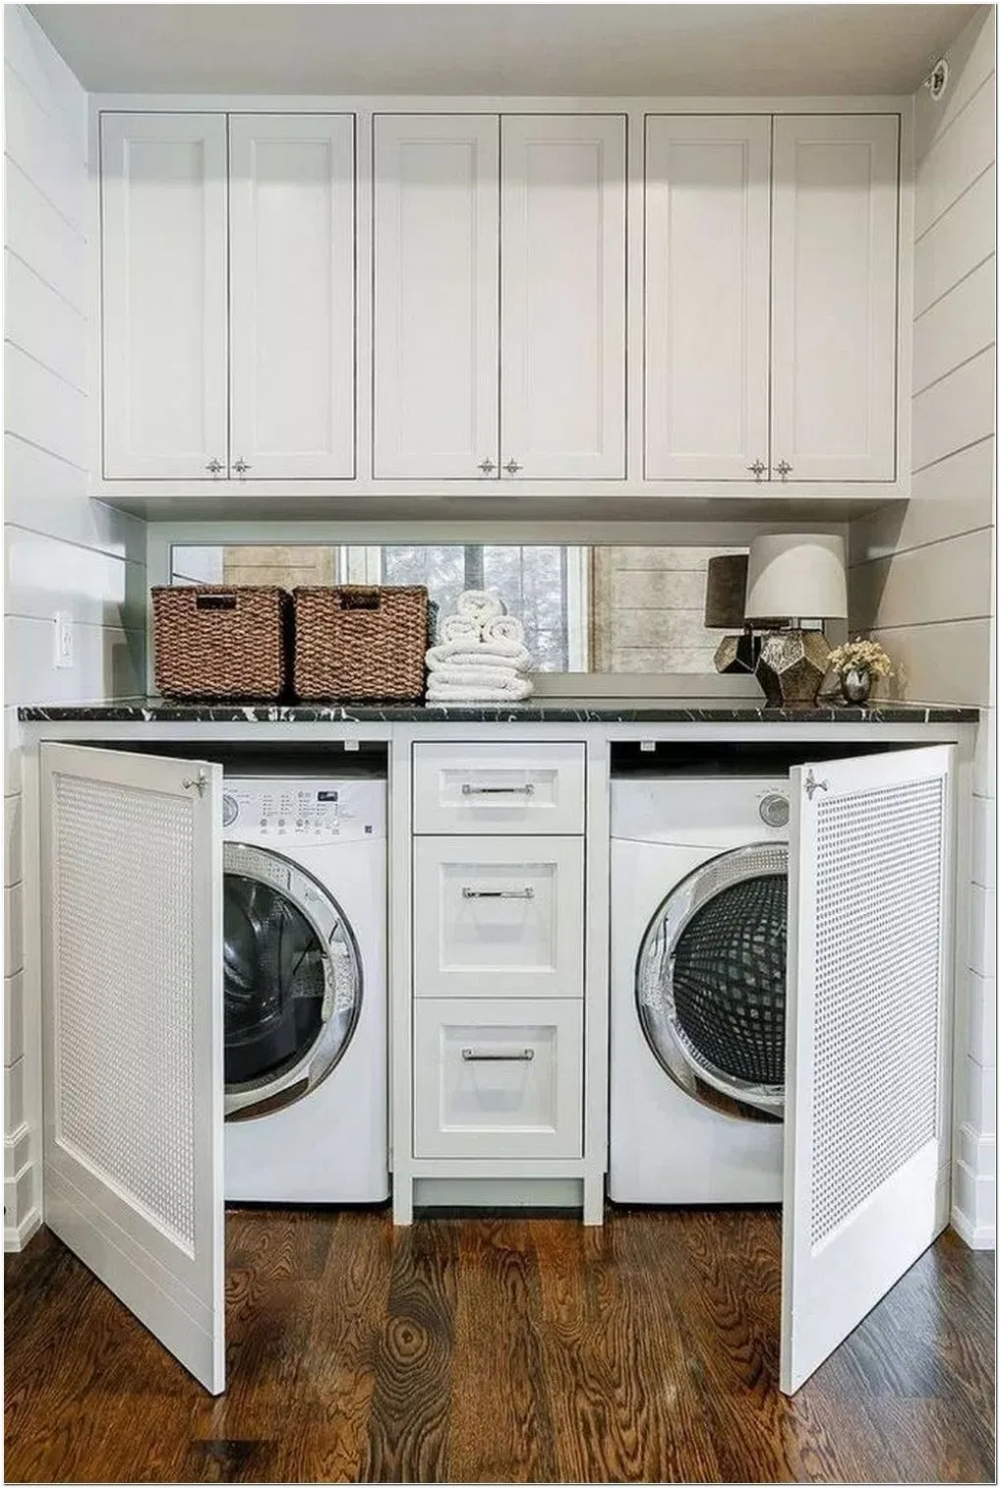 Pin By Olivia Patterson On Laundry Room In 2020 Laundry Room Organization Storage Modern Laundry Rooms Stylish Laundry Room